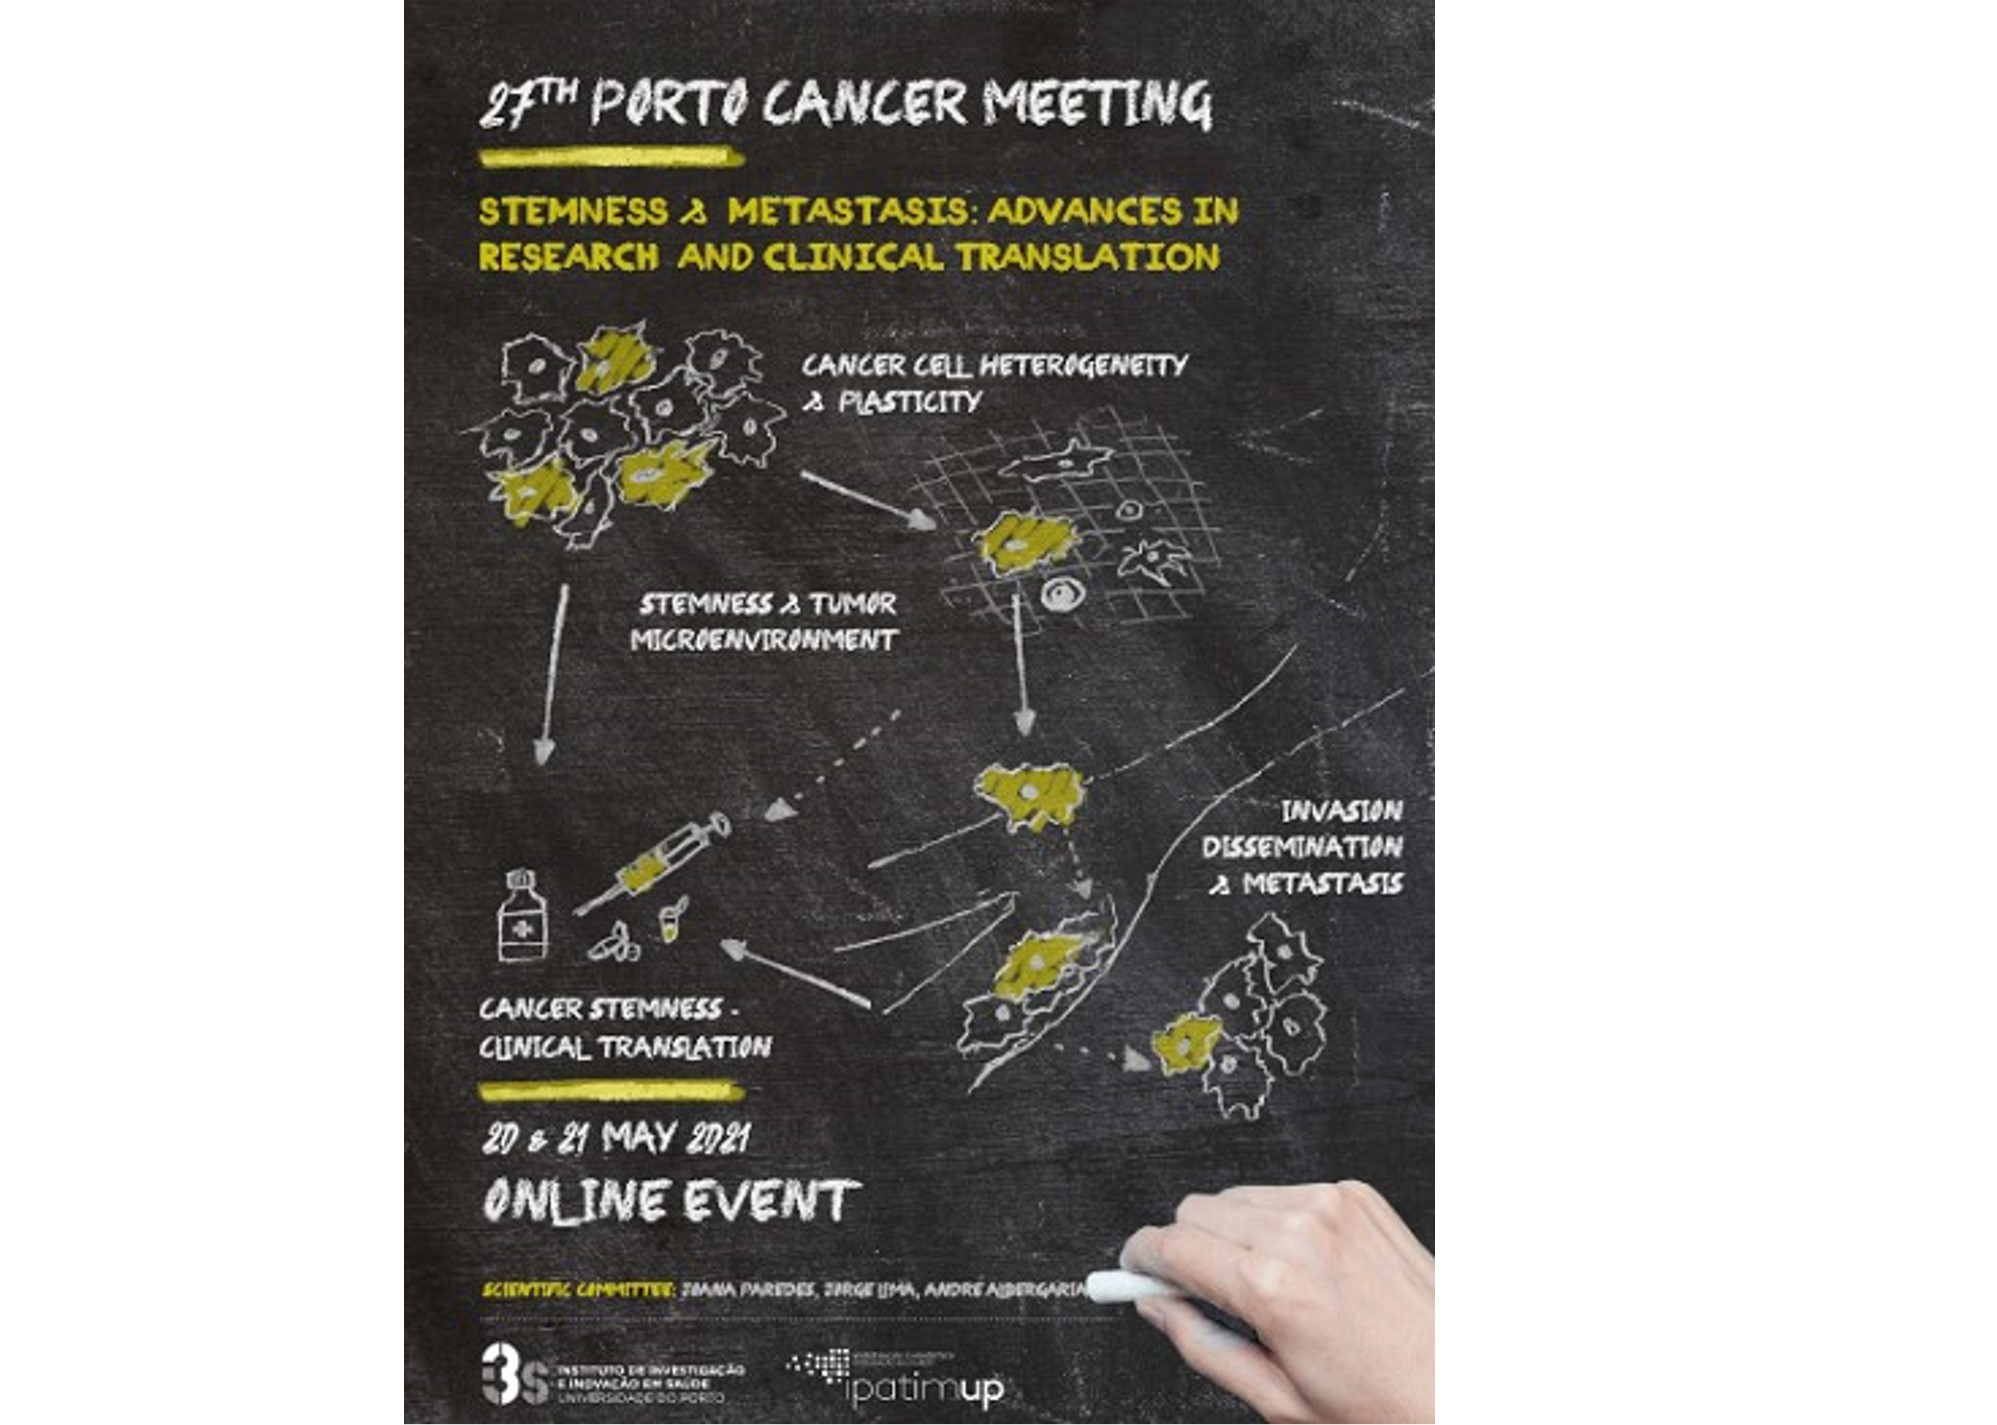 27th PORTO CANCER MEETING: Stemness & Metastasis: Advances in Research and Clinical Translation